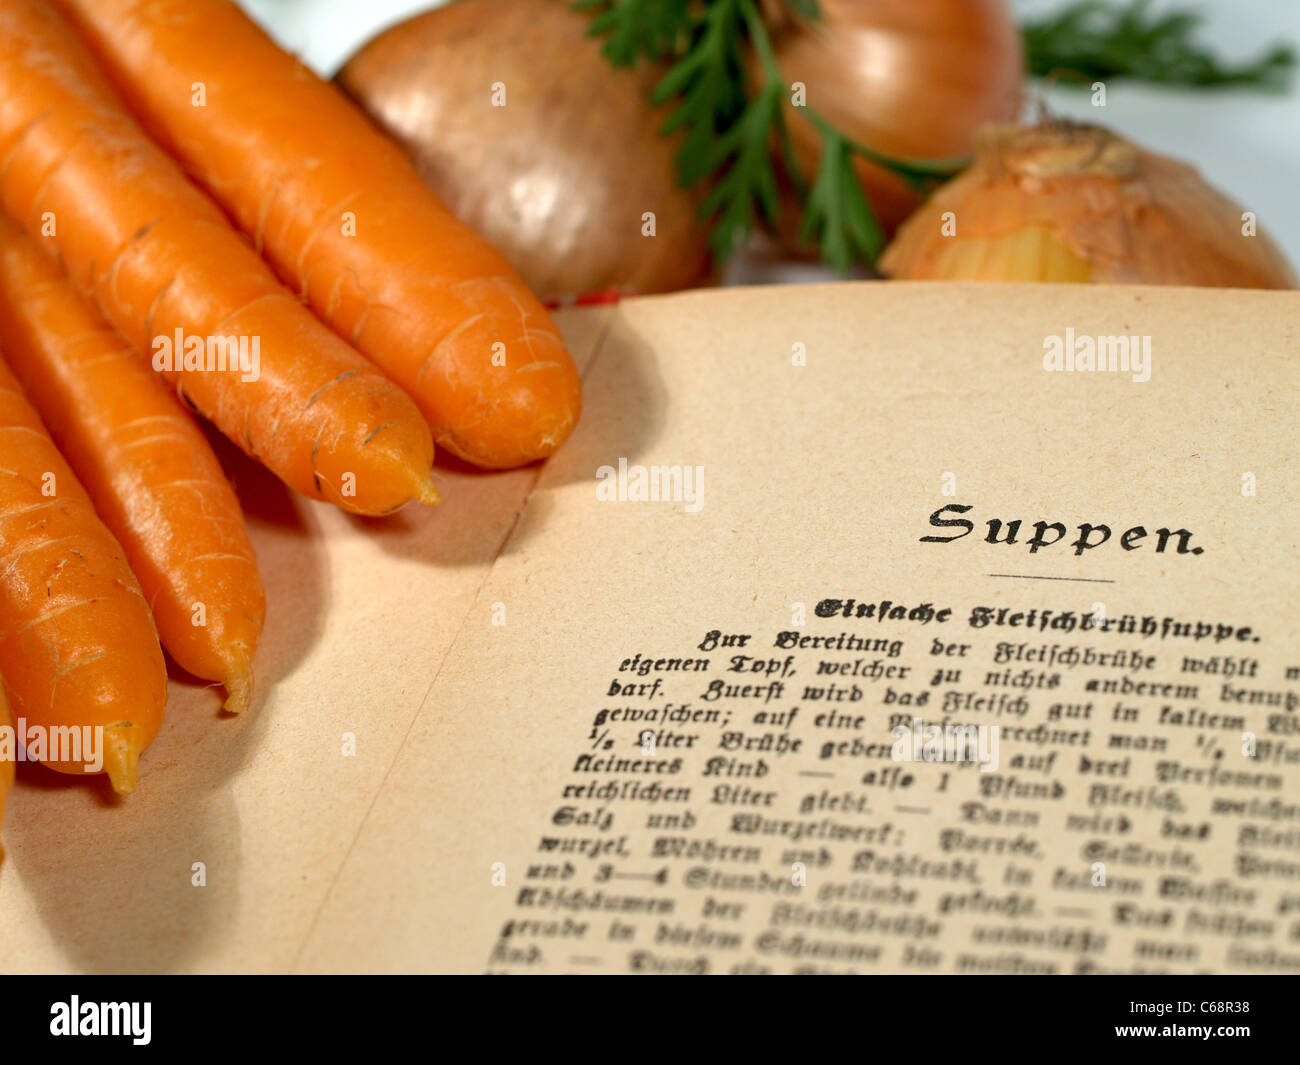 an old German cookbook side by side with carrots and onions Stock Photo